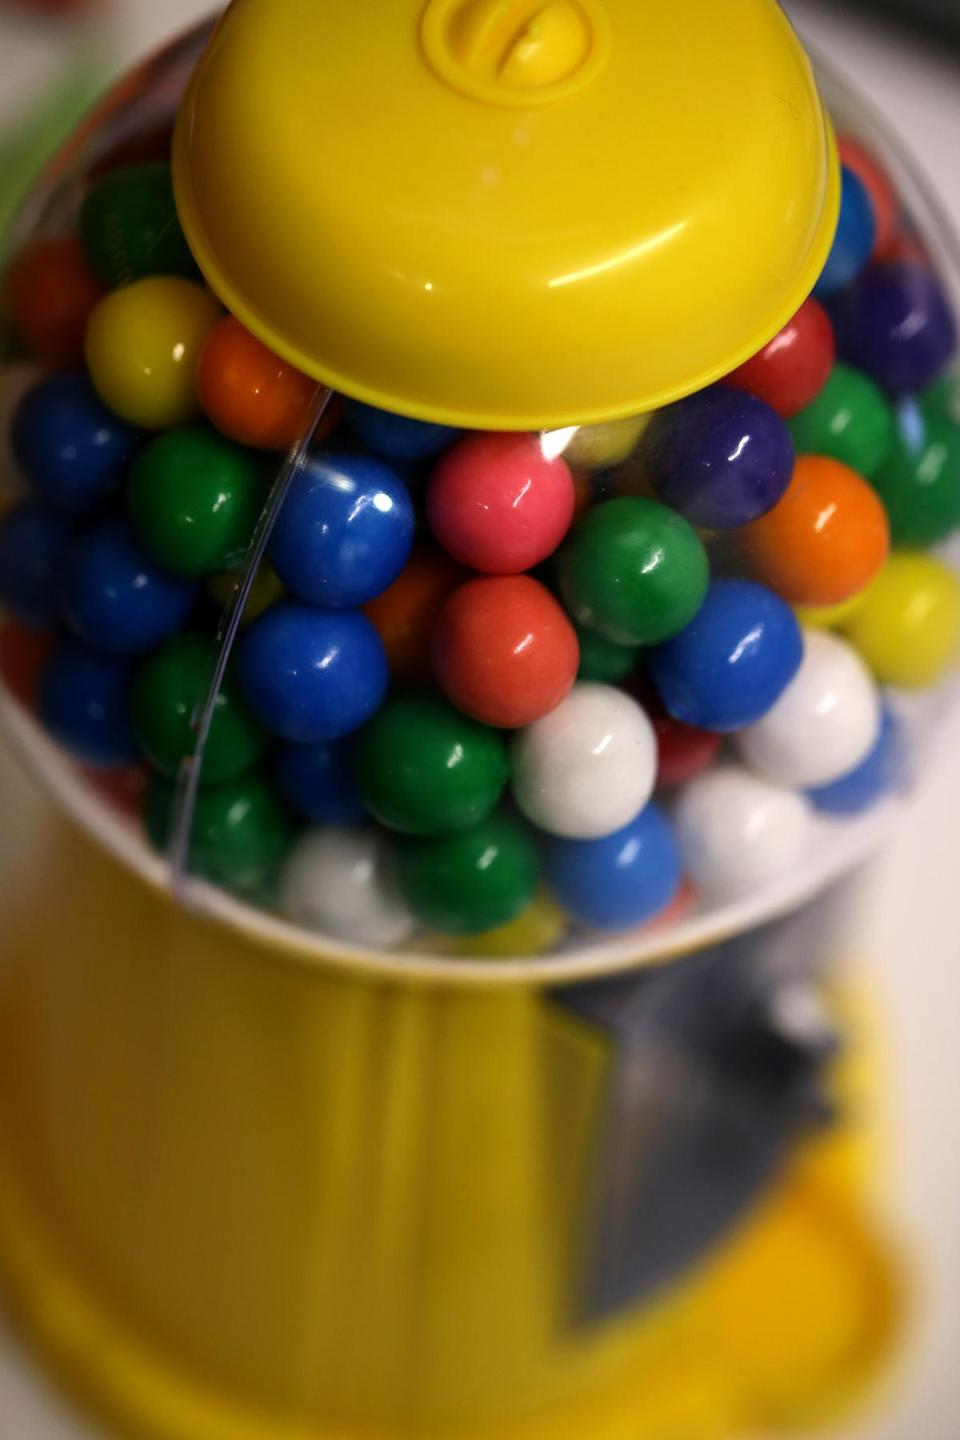 On her desk is a gumball machine, which helps symbolize to her the learning possibilities in trying something new.